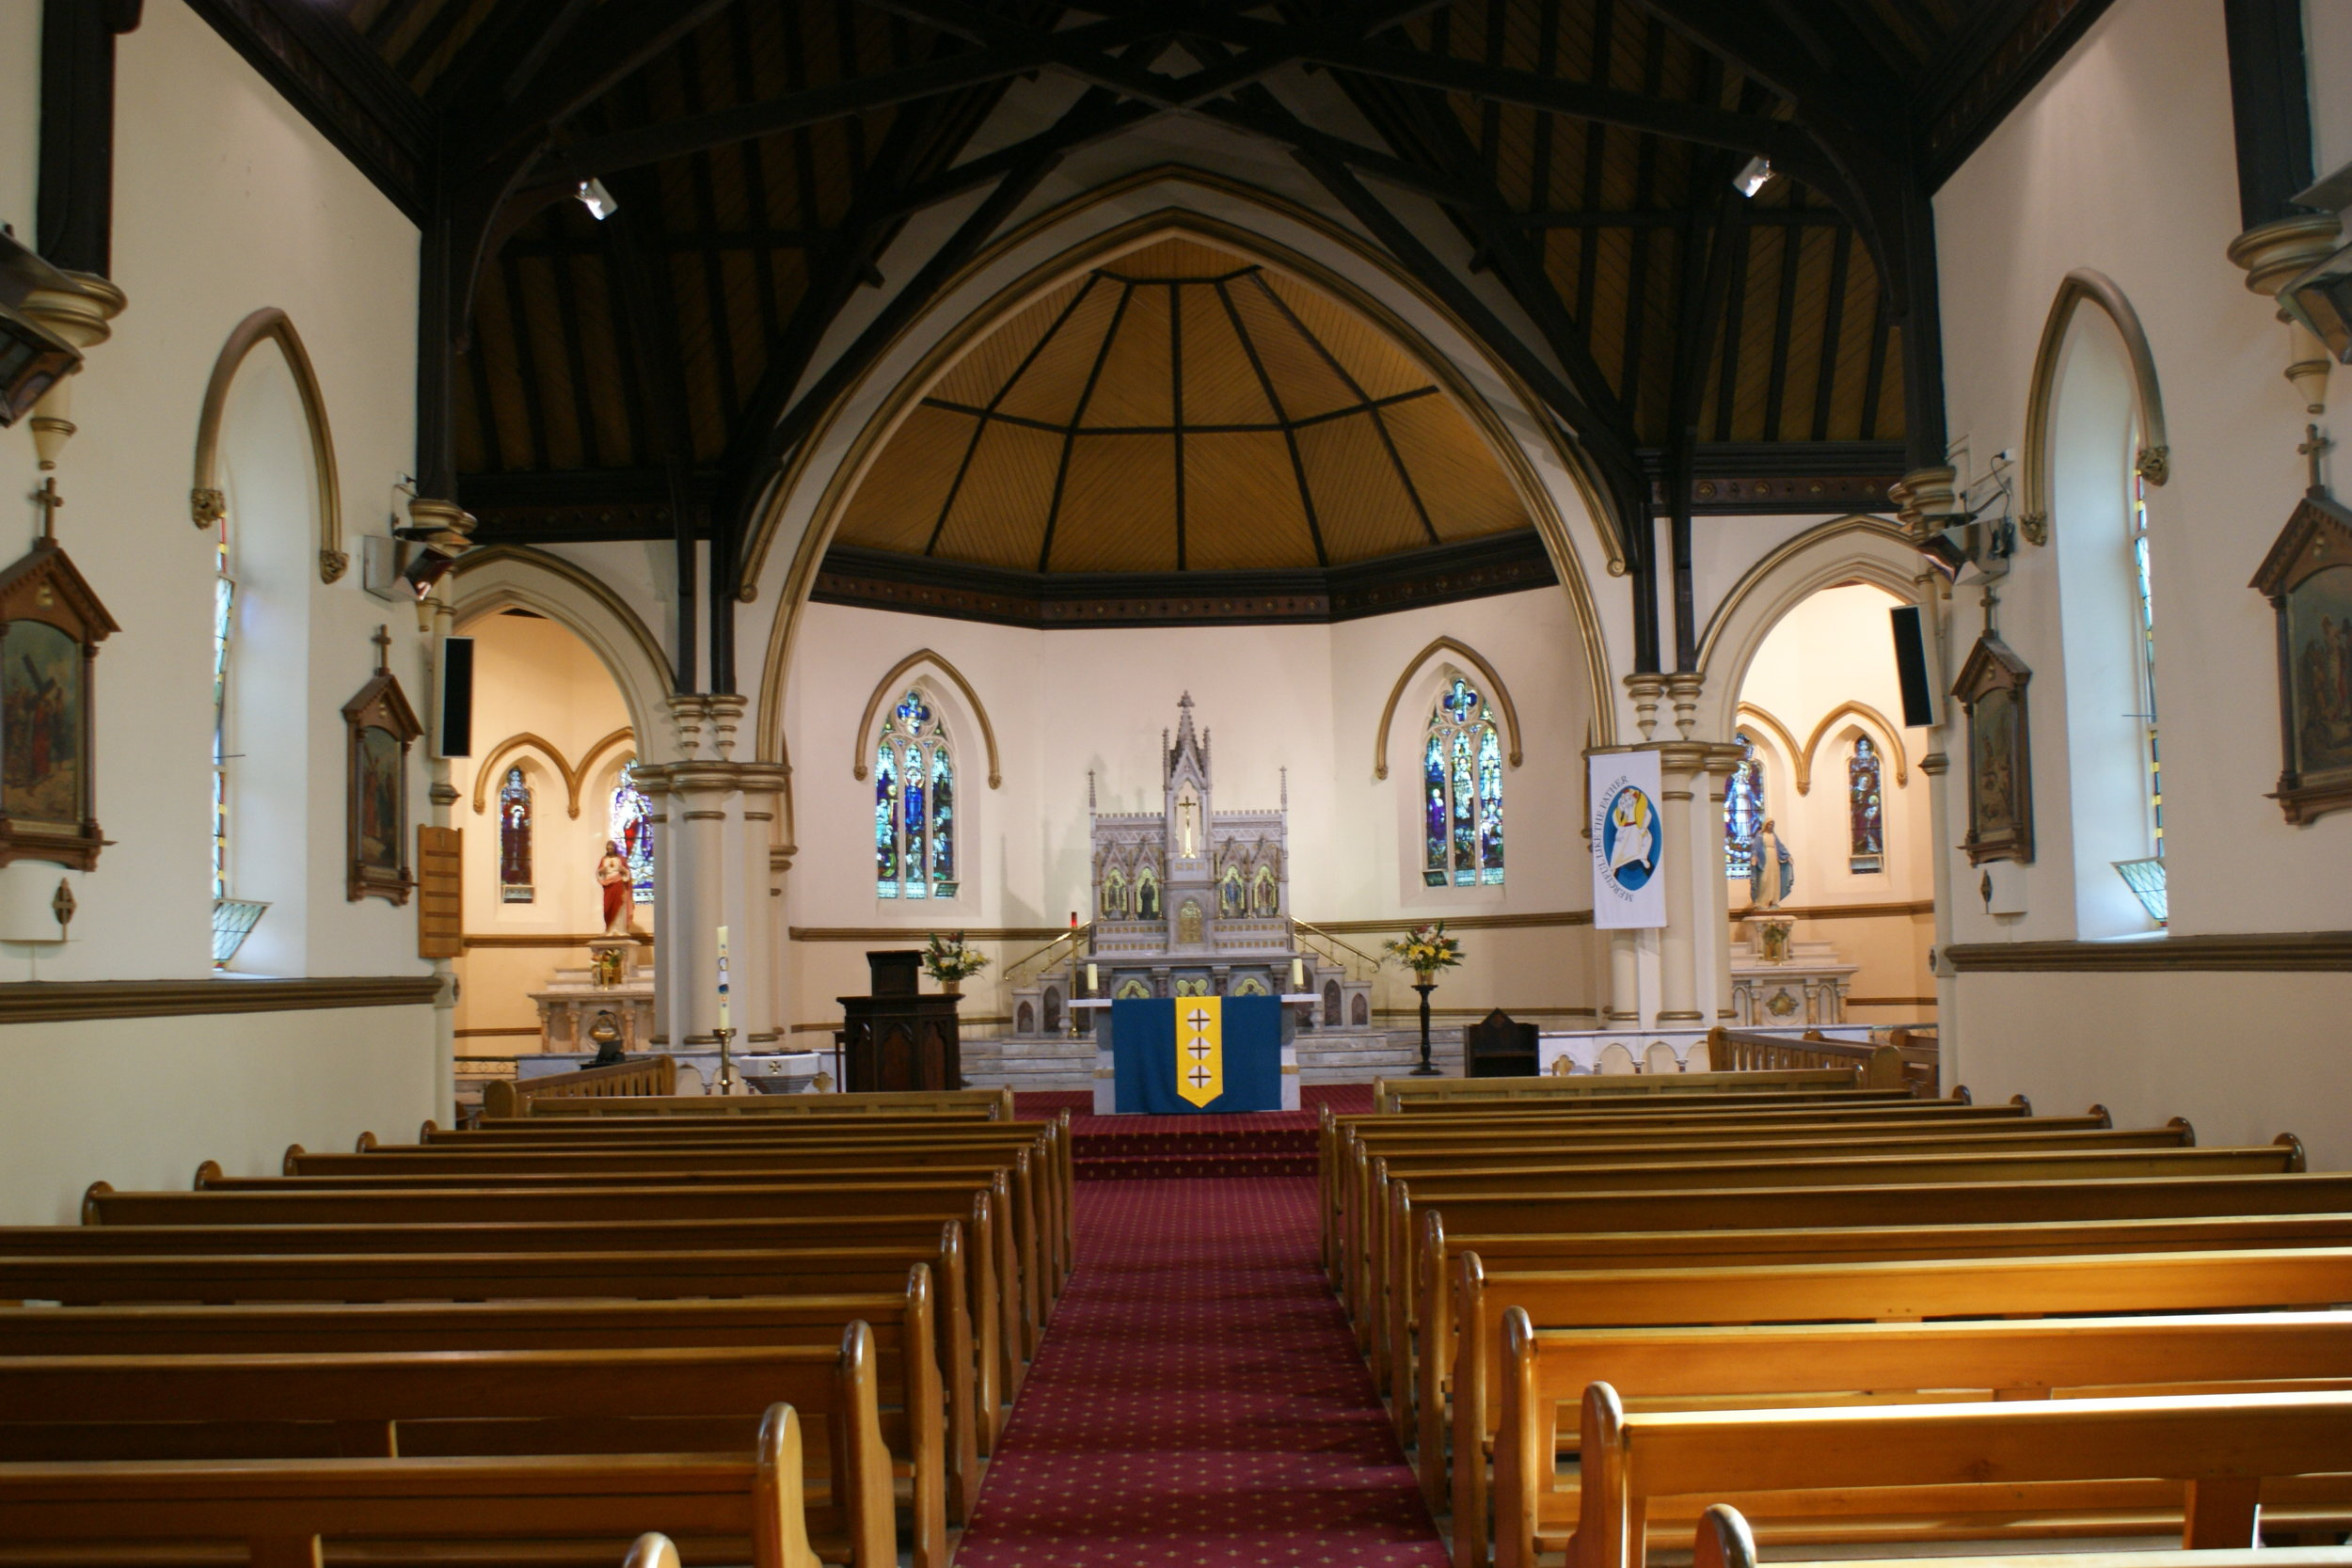 The interior of St Ambrose's Church